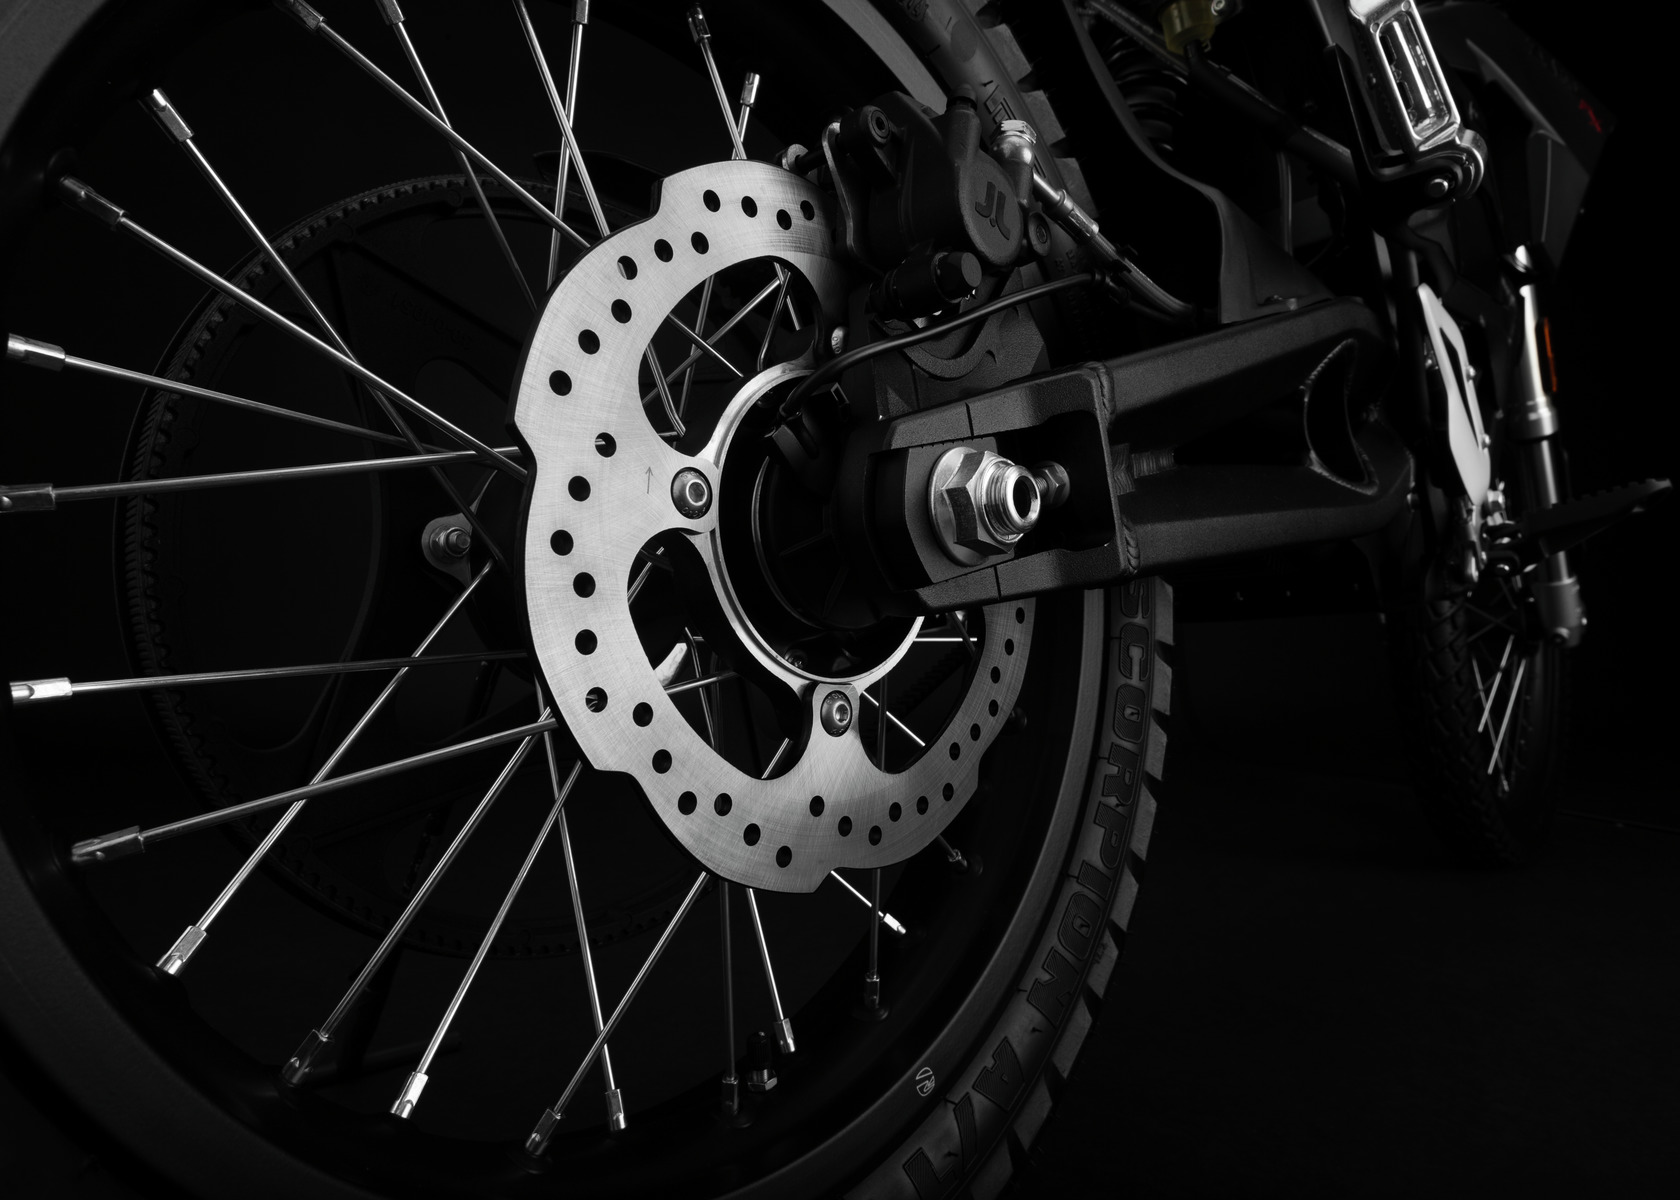 2017 Zero FX Electric Motorcycle: Rear Brake